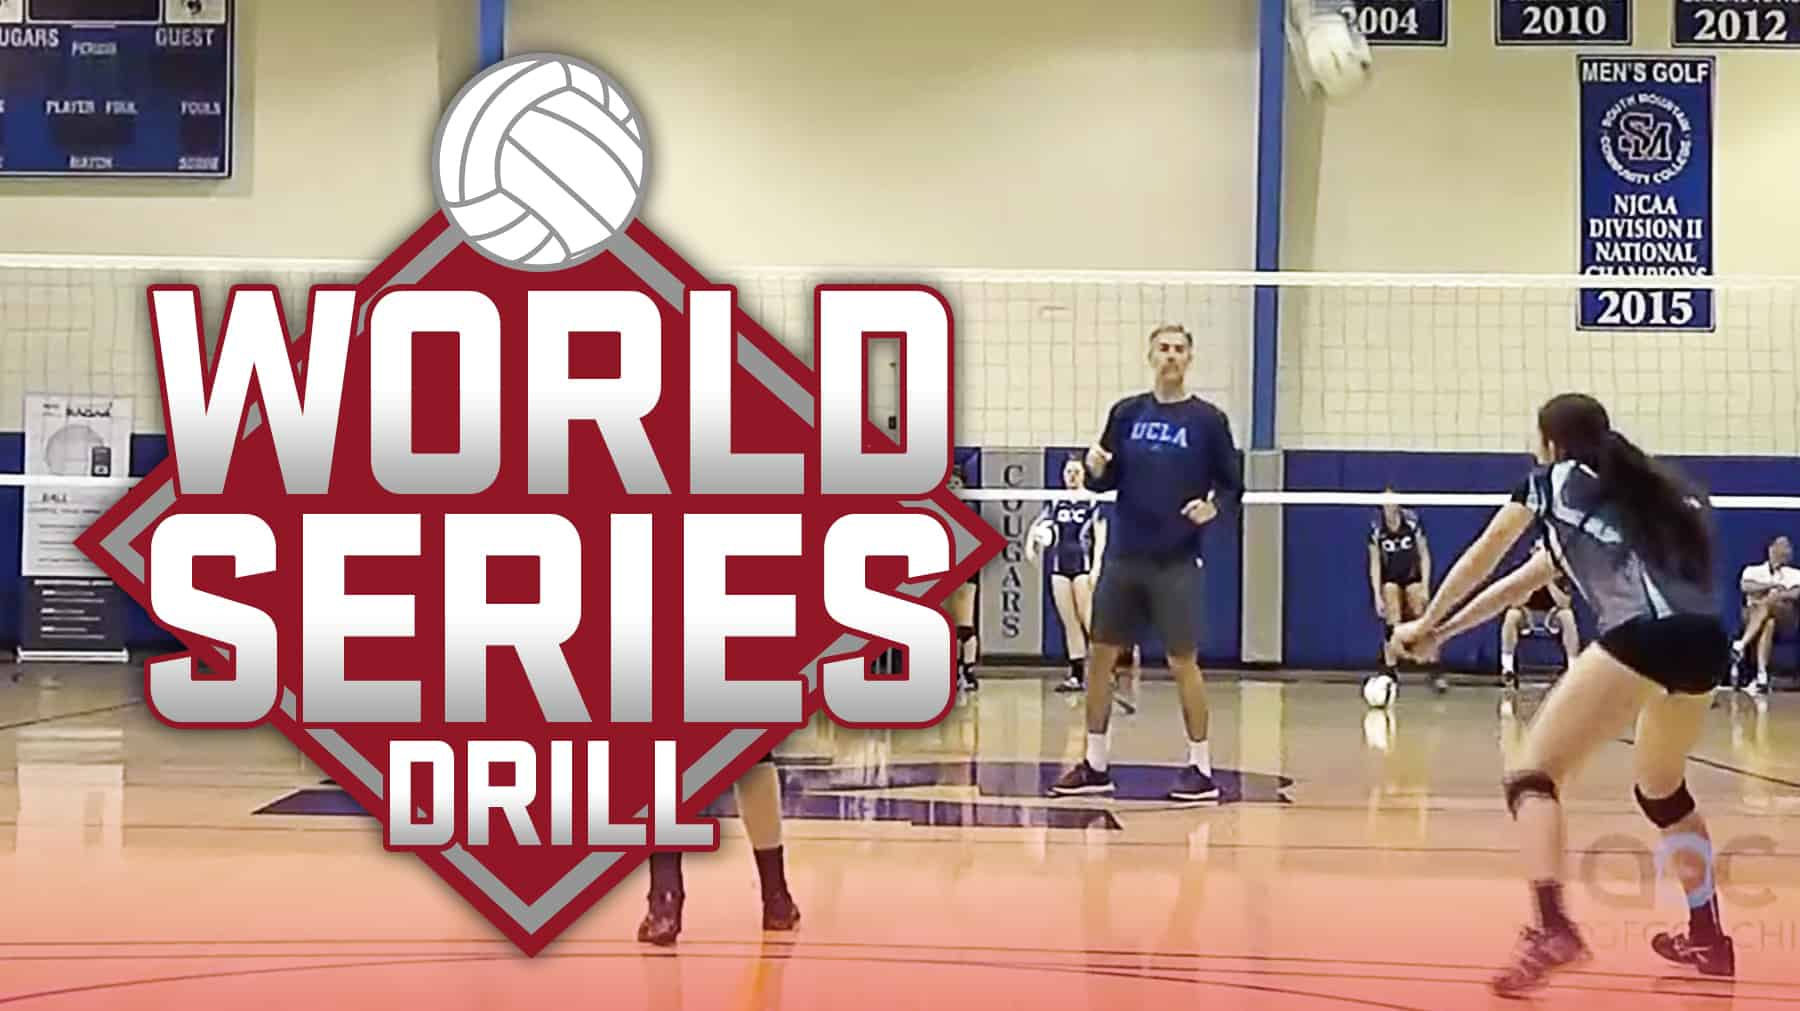 fun warm up games Volleyball Drills, Videos and | Sportplan